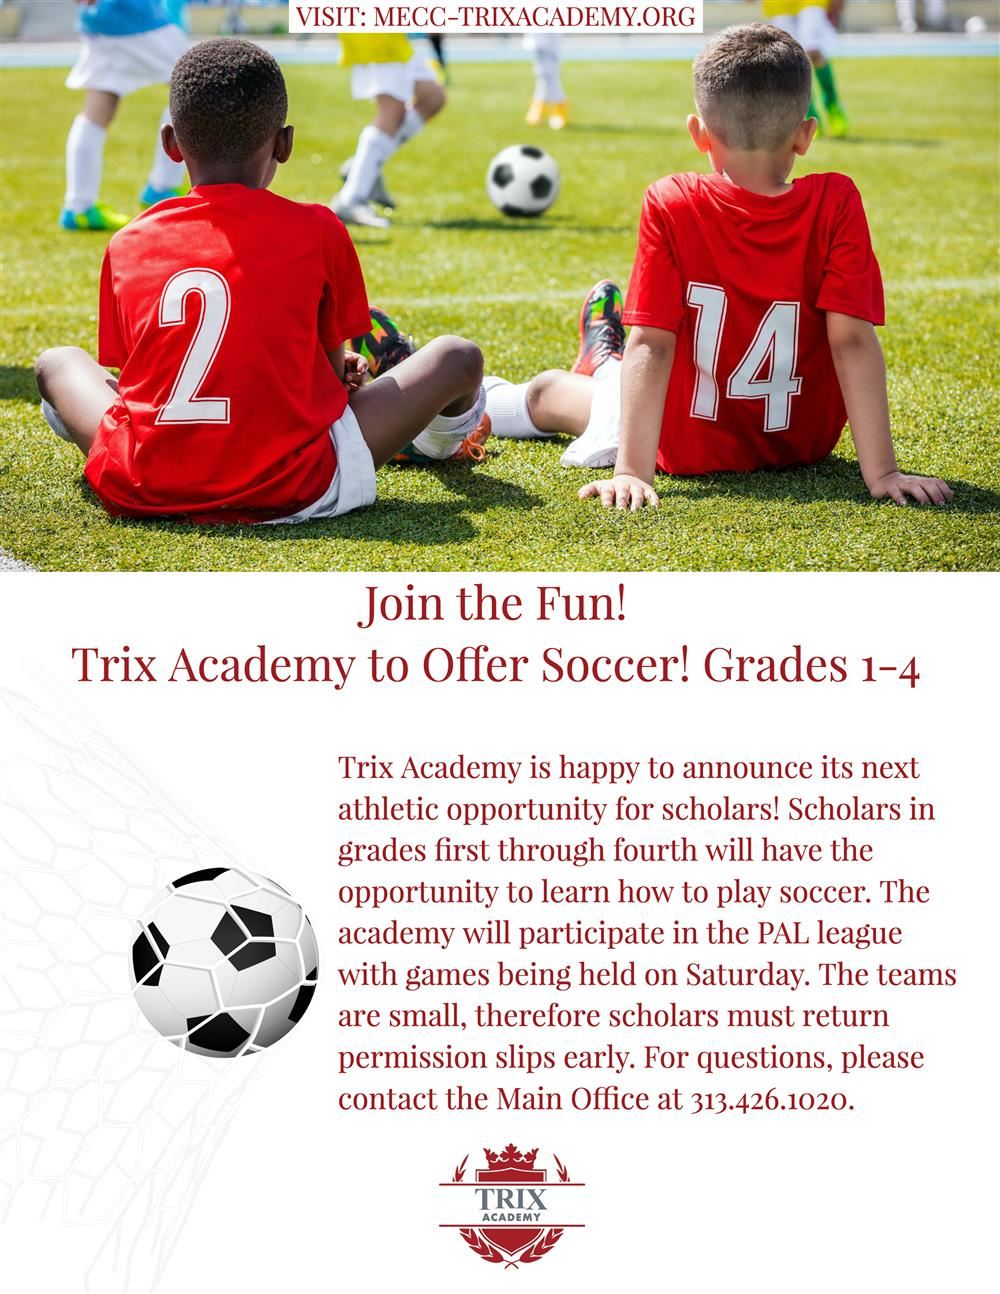 Trix Academy to now offer soccer for grades 1-4. Contact the main office for details